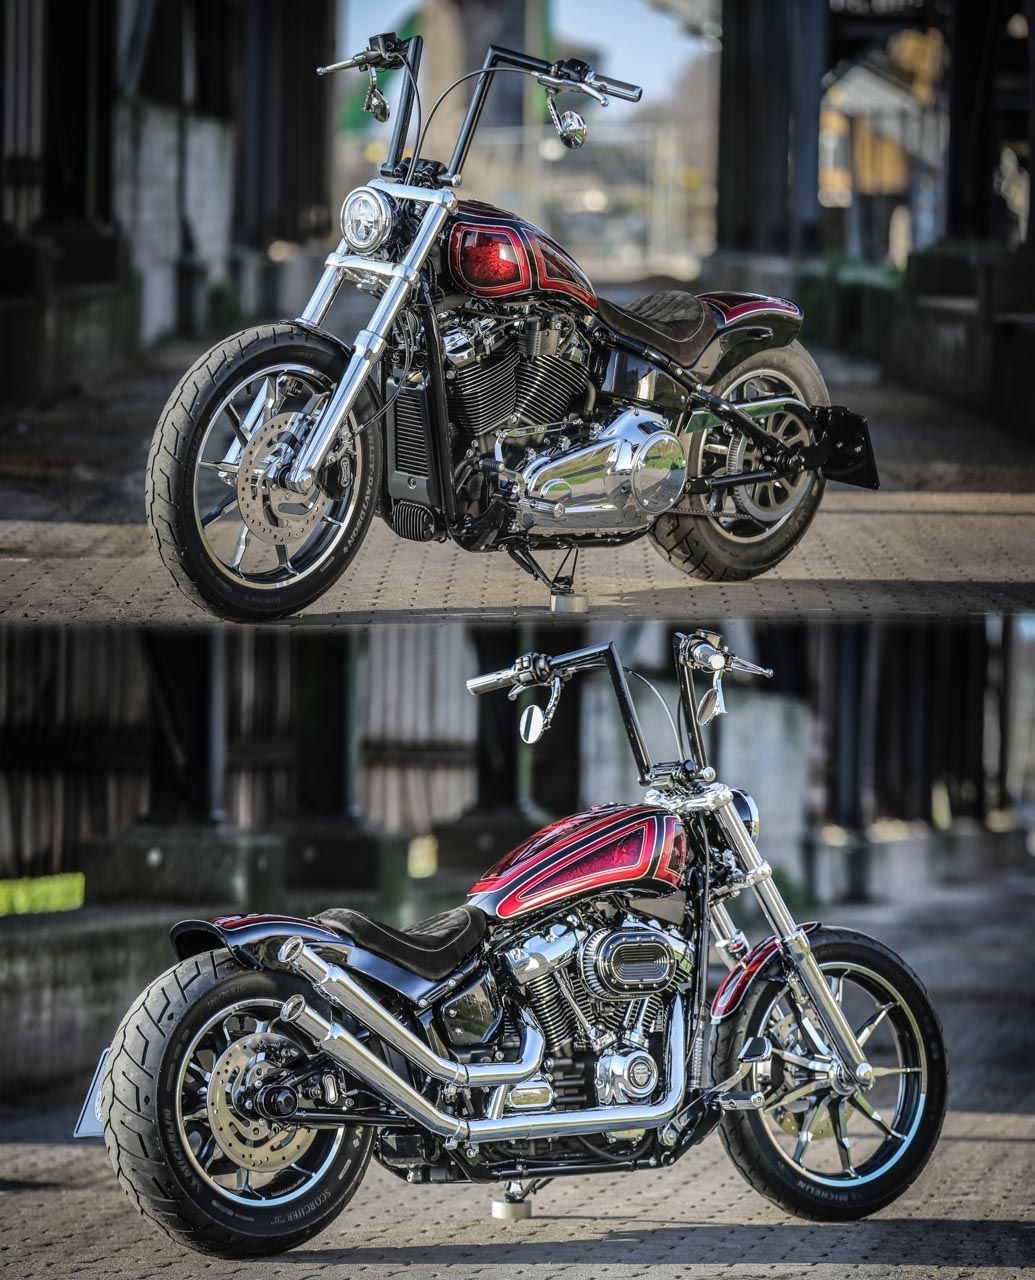 thunderbike iron butterfly customized harley davidson. Black Bedroom Furniture Sets. Home Design Ideas